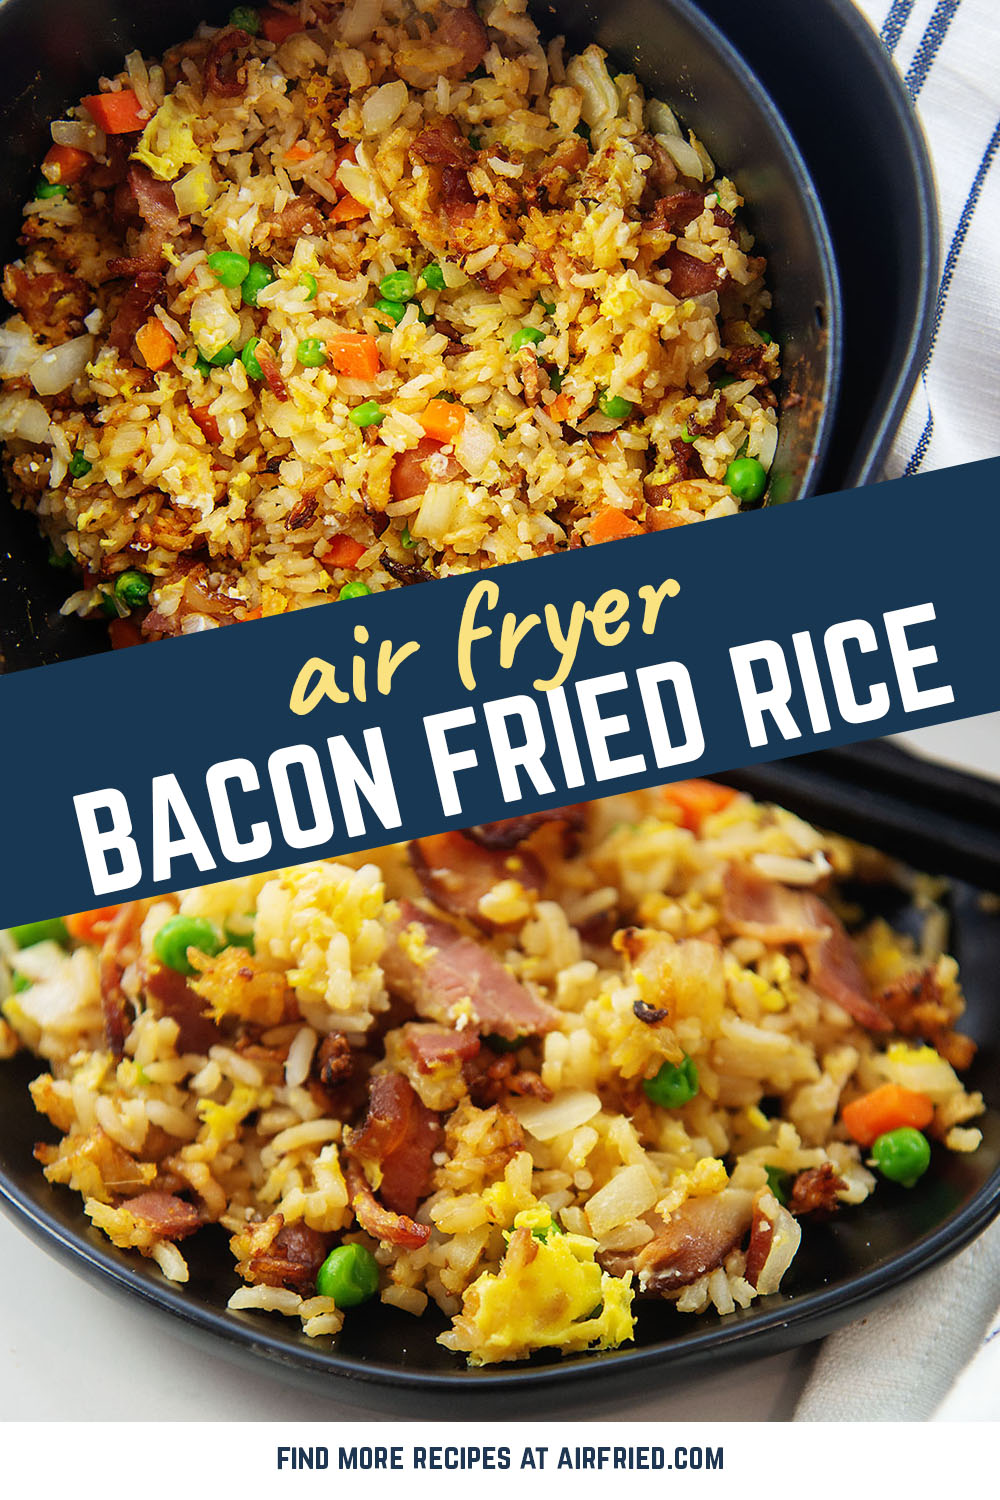 Try our recipe for bacon fried rice in your air fryer for a fun air fryer recipe!